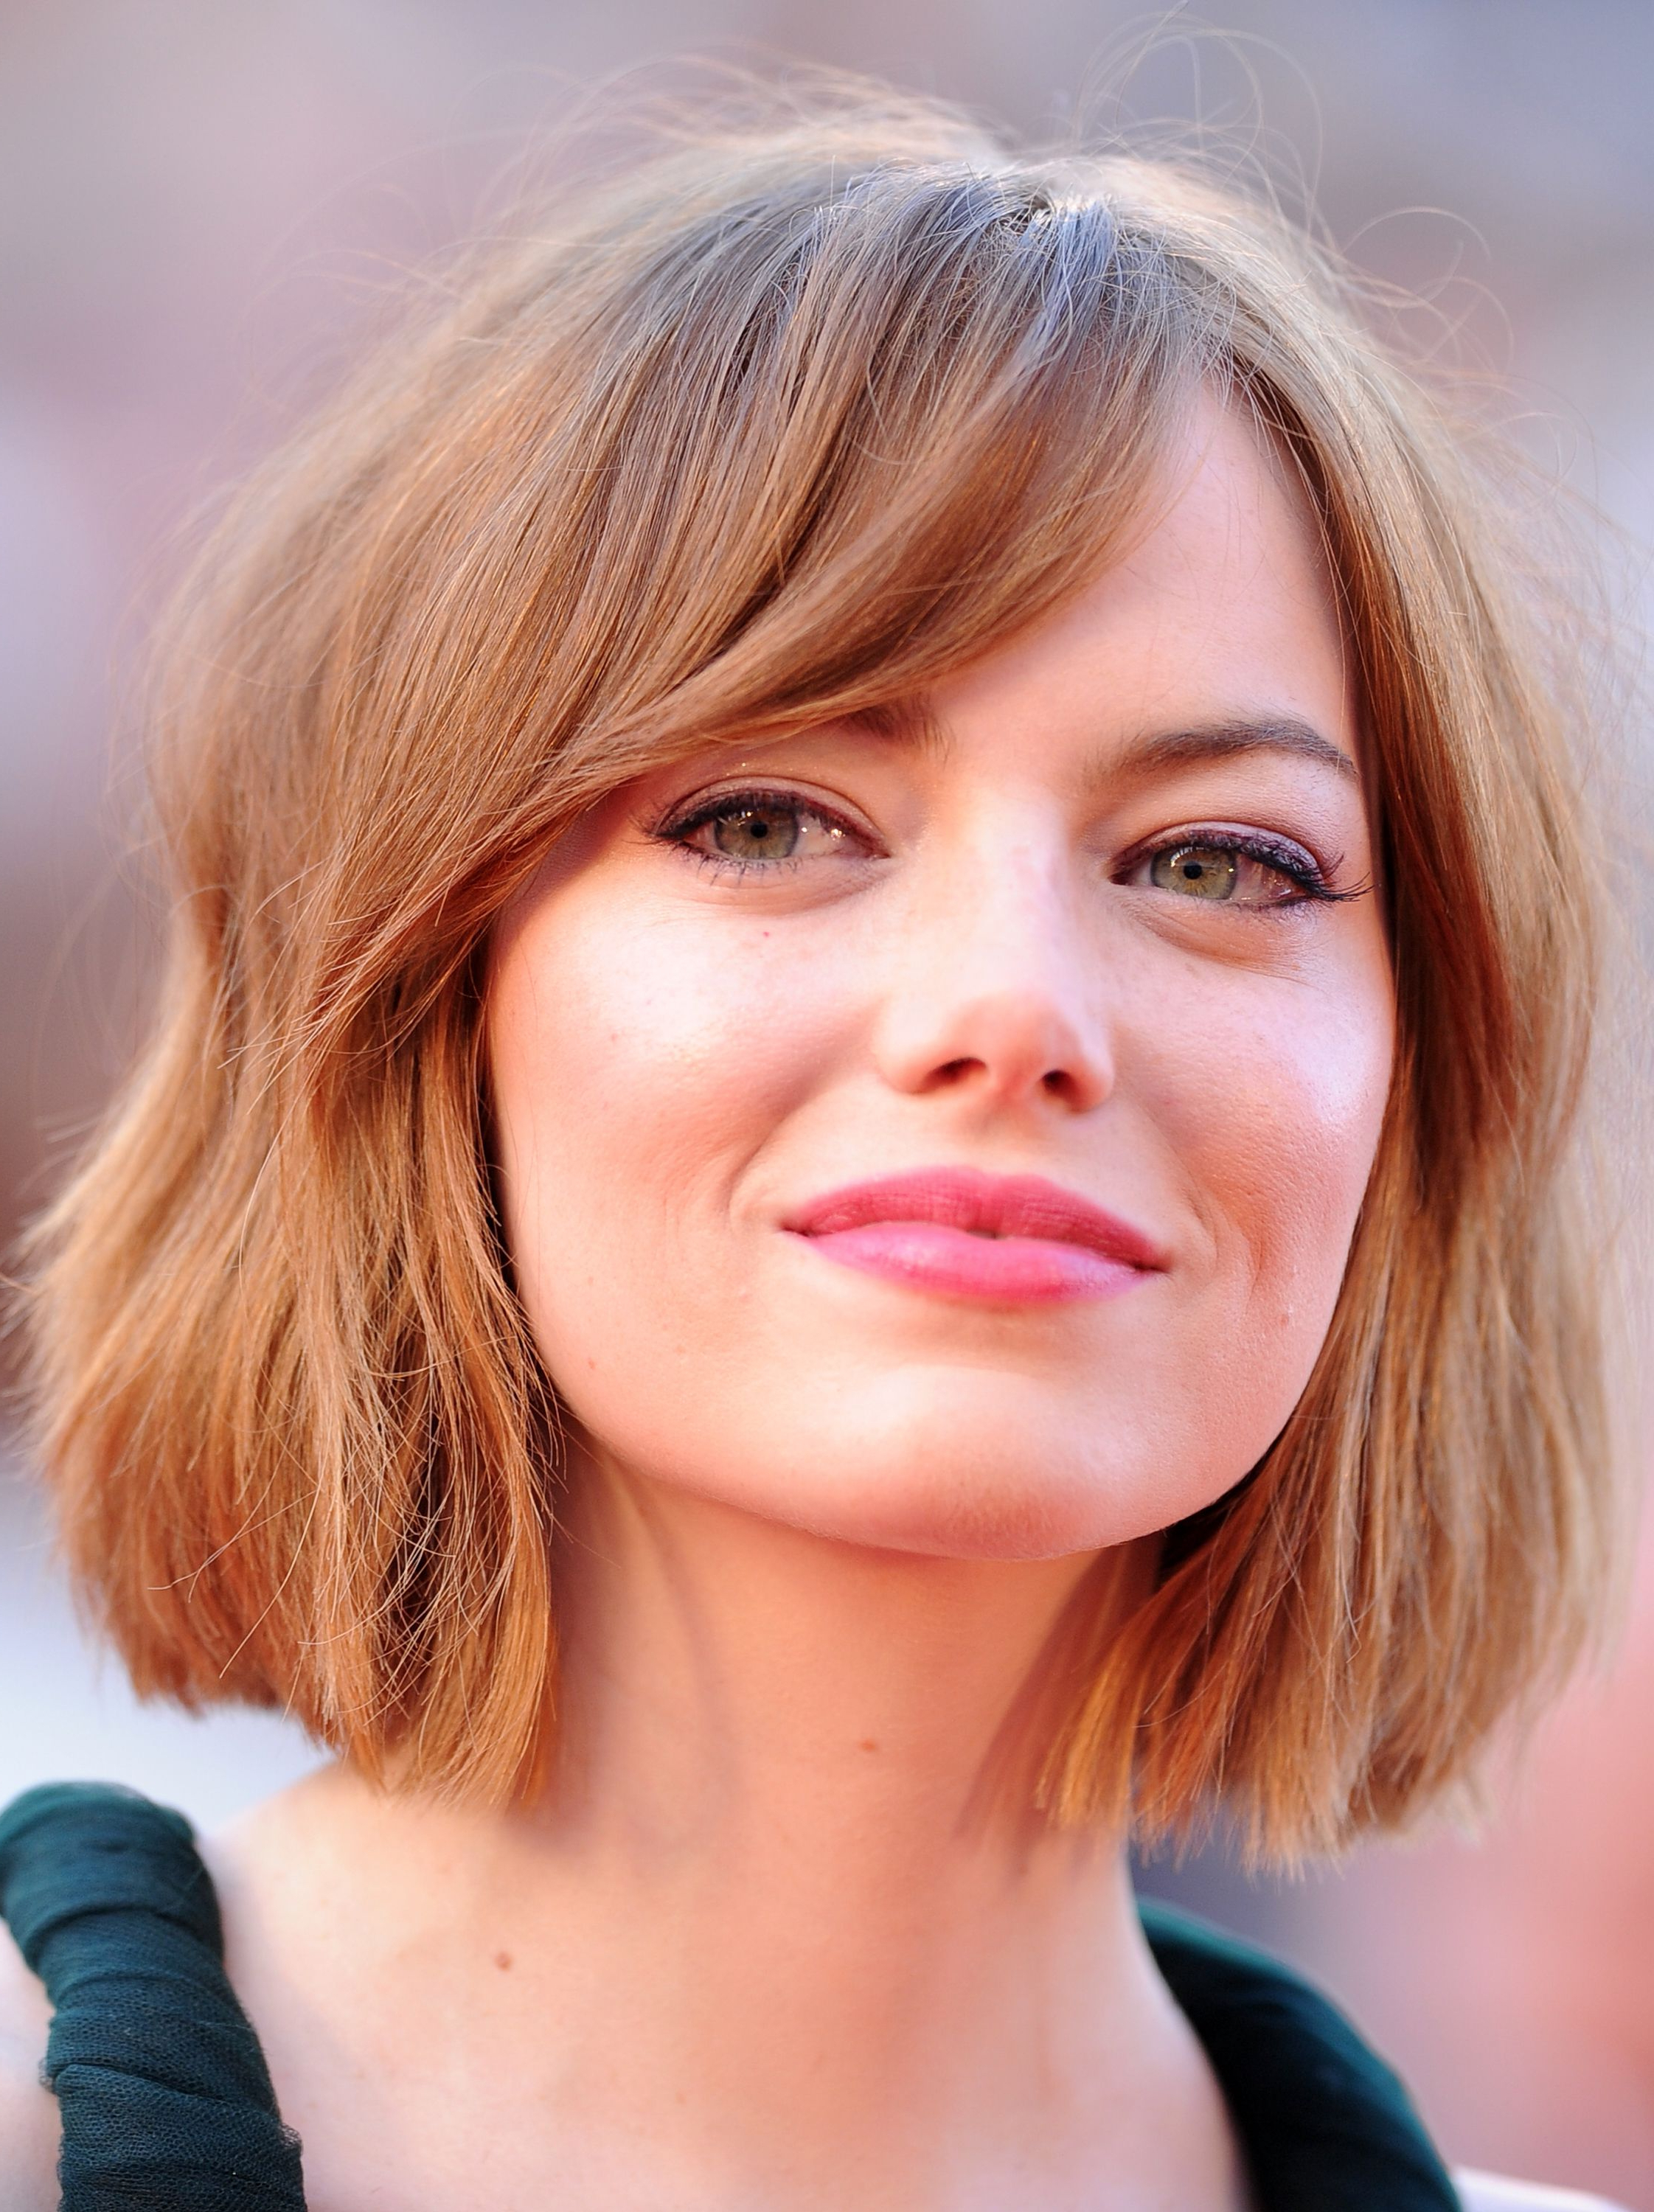 Bob Hairstyles For 2018 – 53 Short Haircut Trends To Try Now With Regard To Short Haircuts Bobs Crops (View 8 of 26)